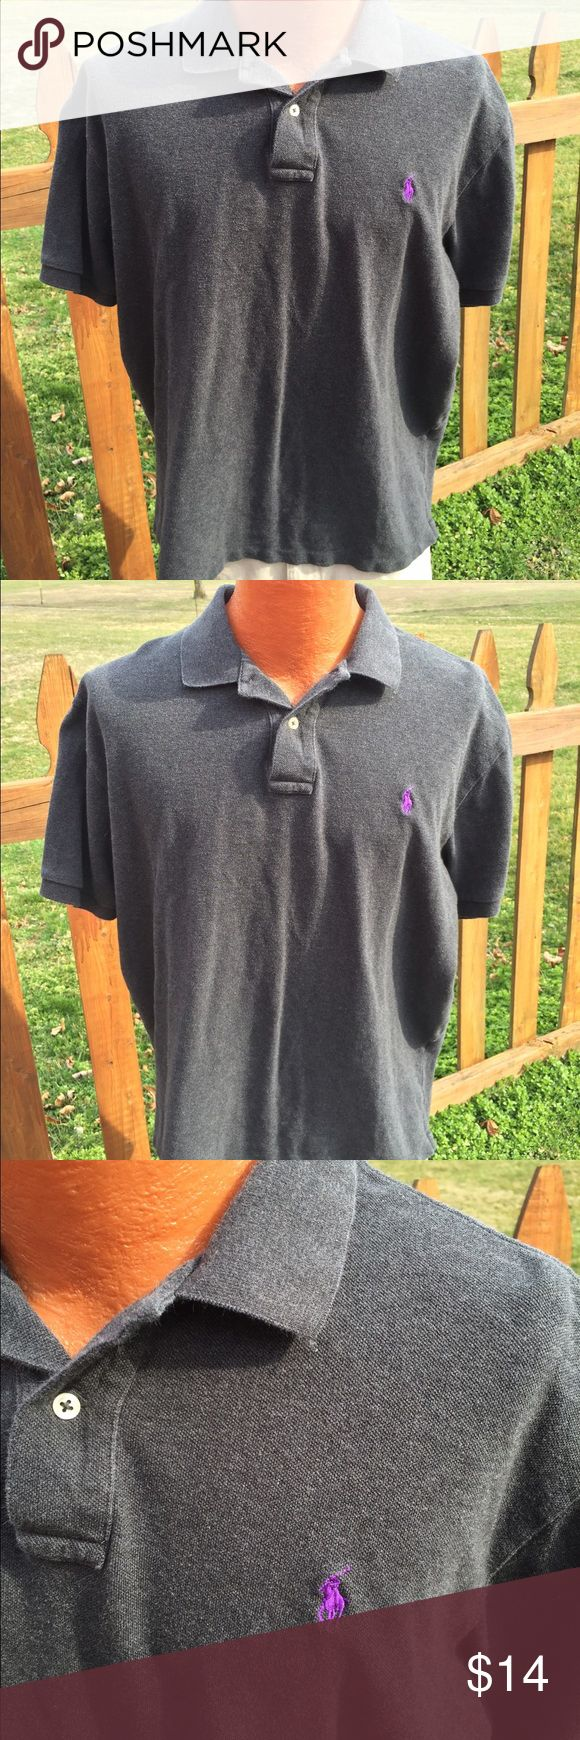 Polo Ralph Lauren Mens Shirt Size XL Size xl. Super gently preowned. Dark grey in color. Be sure to view the other items in our closet. We offer both women's and Mens items in a variety of sizes. Bundle and save!! Thank you for viewing our item!! Polo by Ralph Lauren Shirts Polos